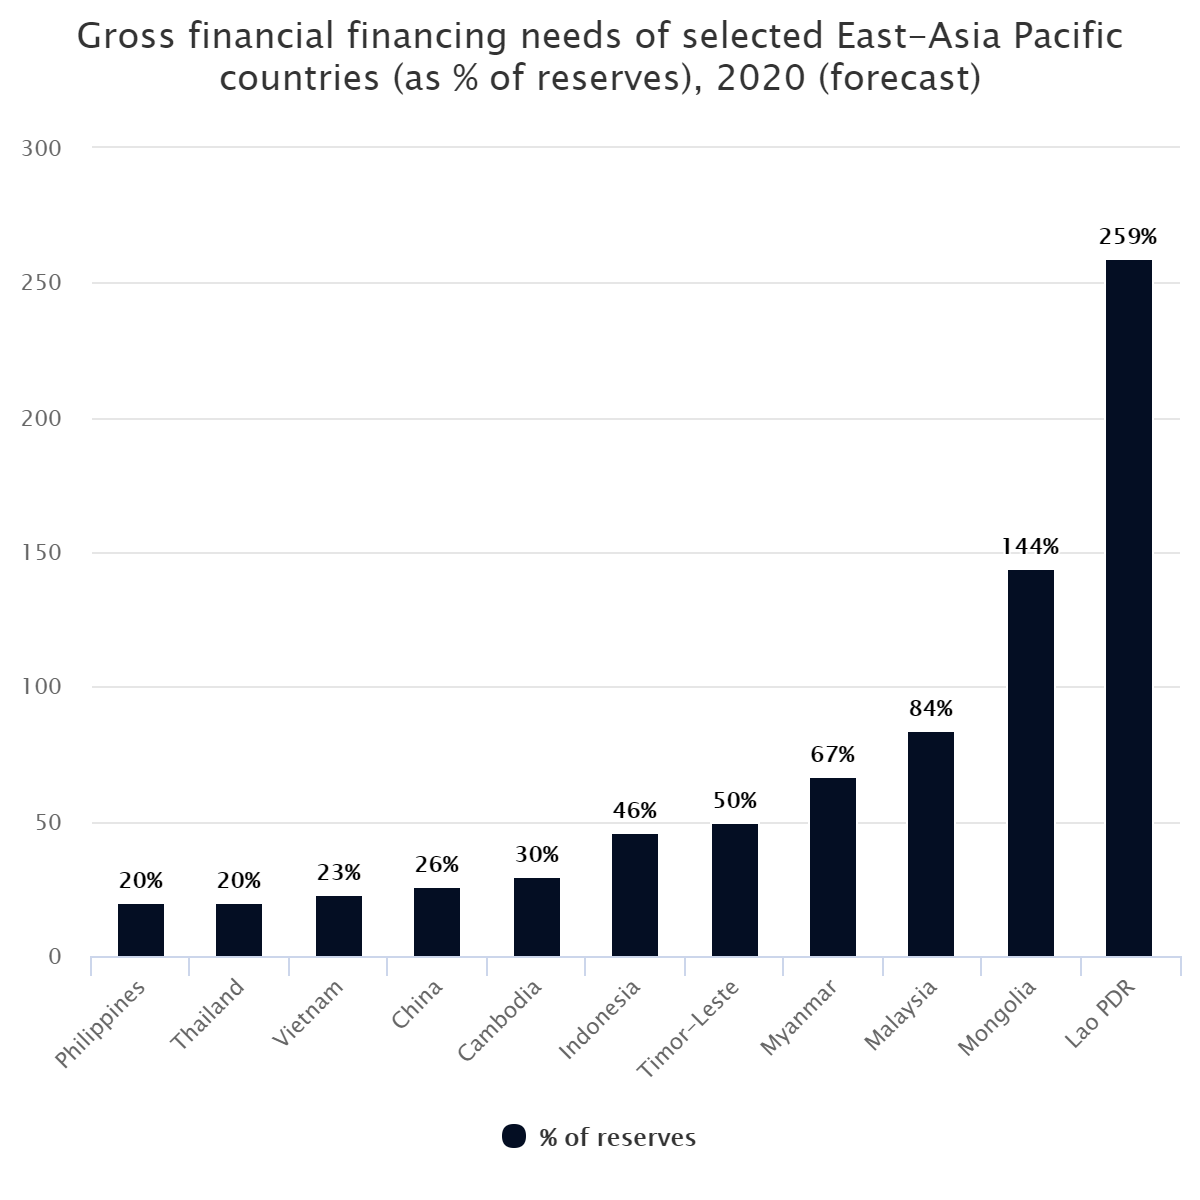 Gross financial financing needs of selected East-Asia Pacific countries (as % of reserves), 2020 (forecast)